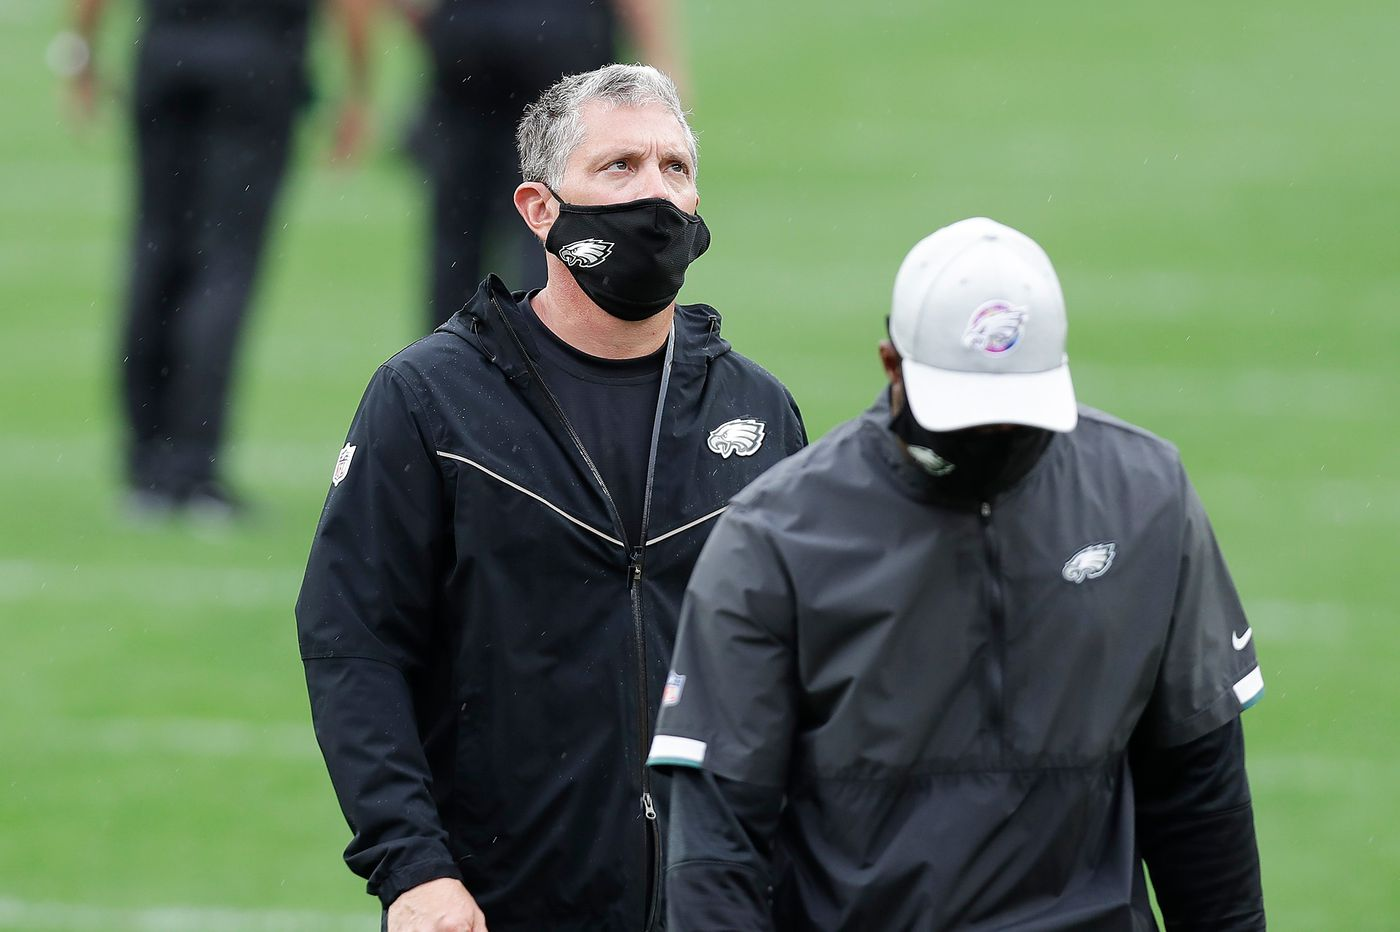 Eagles-Steelers Up-Down Drill: Jim Schwartz gets exposed again